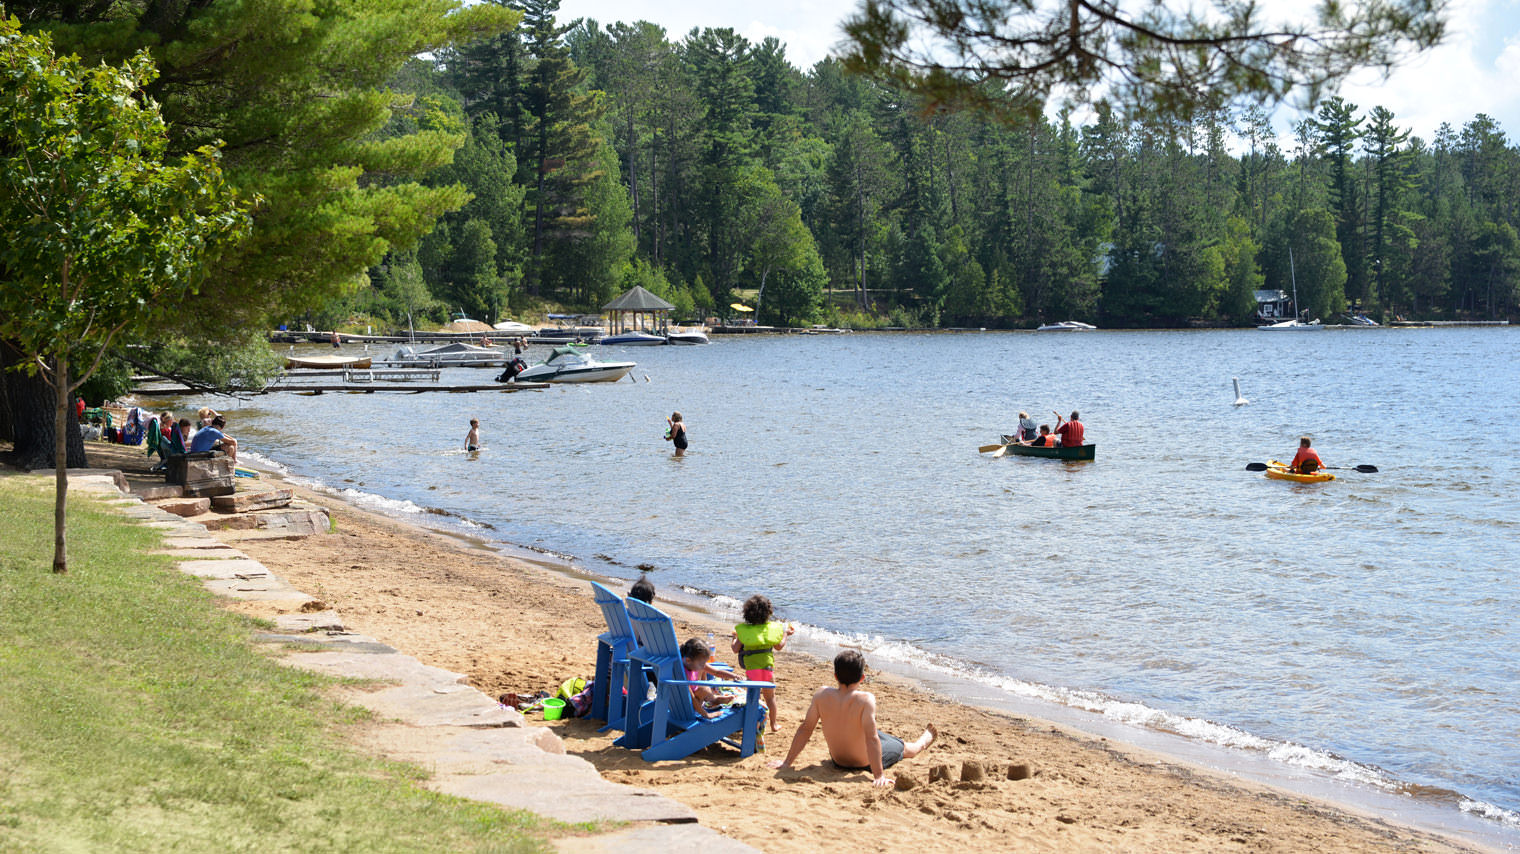 Beaches in Muskoka